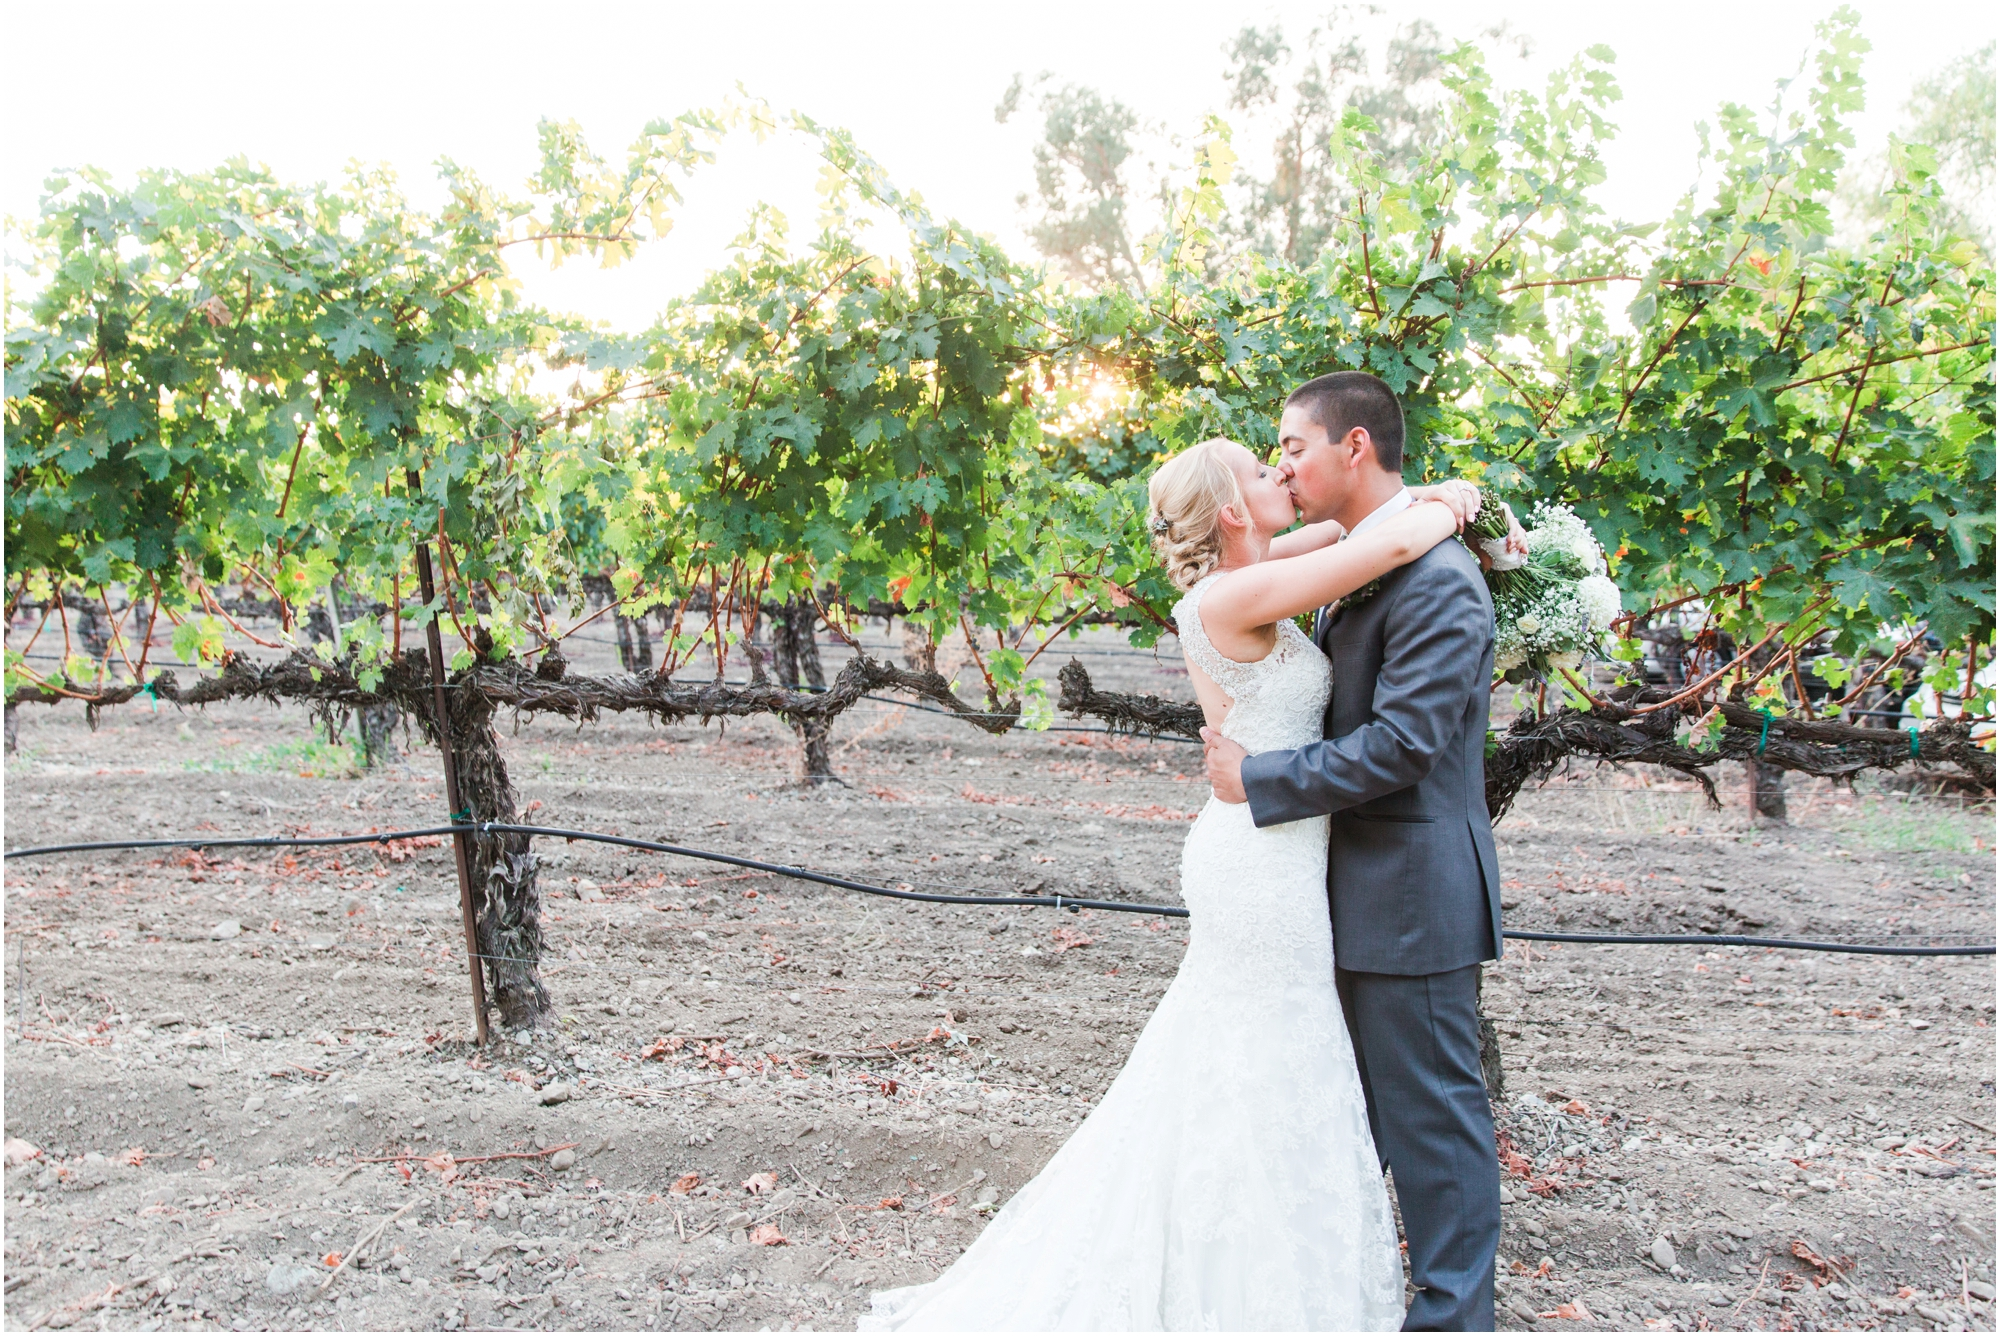 Retzlaff Winery wedding pictures by Briana Calderon Photography_2334.jpg